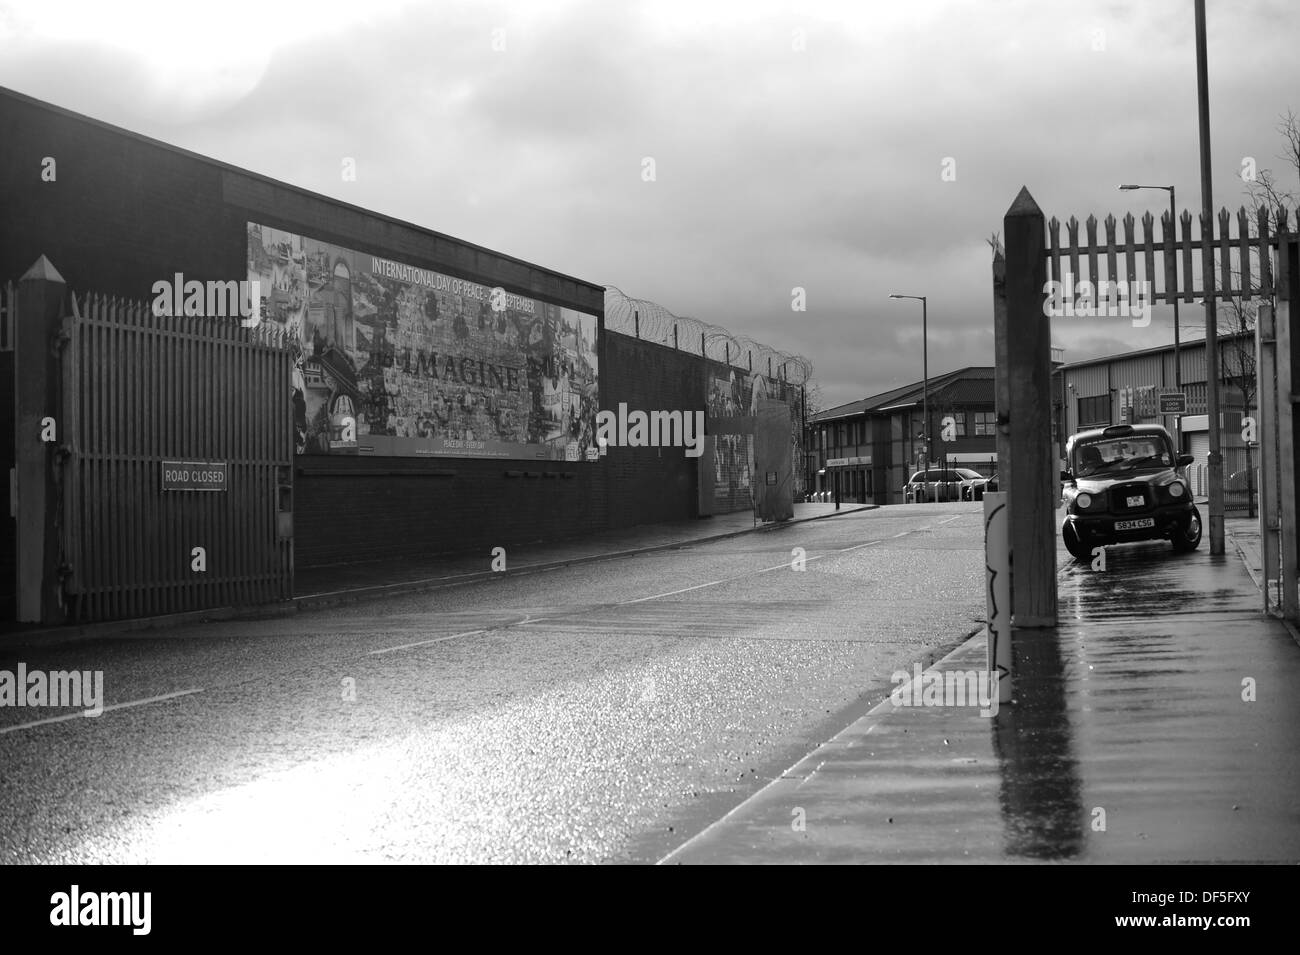 Northumberland Street, Checkpoint between Falls Road and Shankill Road, West Belfast, UK. - Stock Image